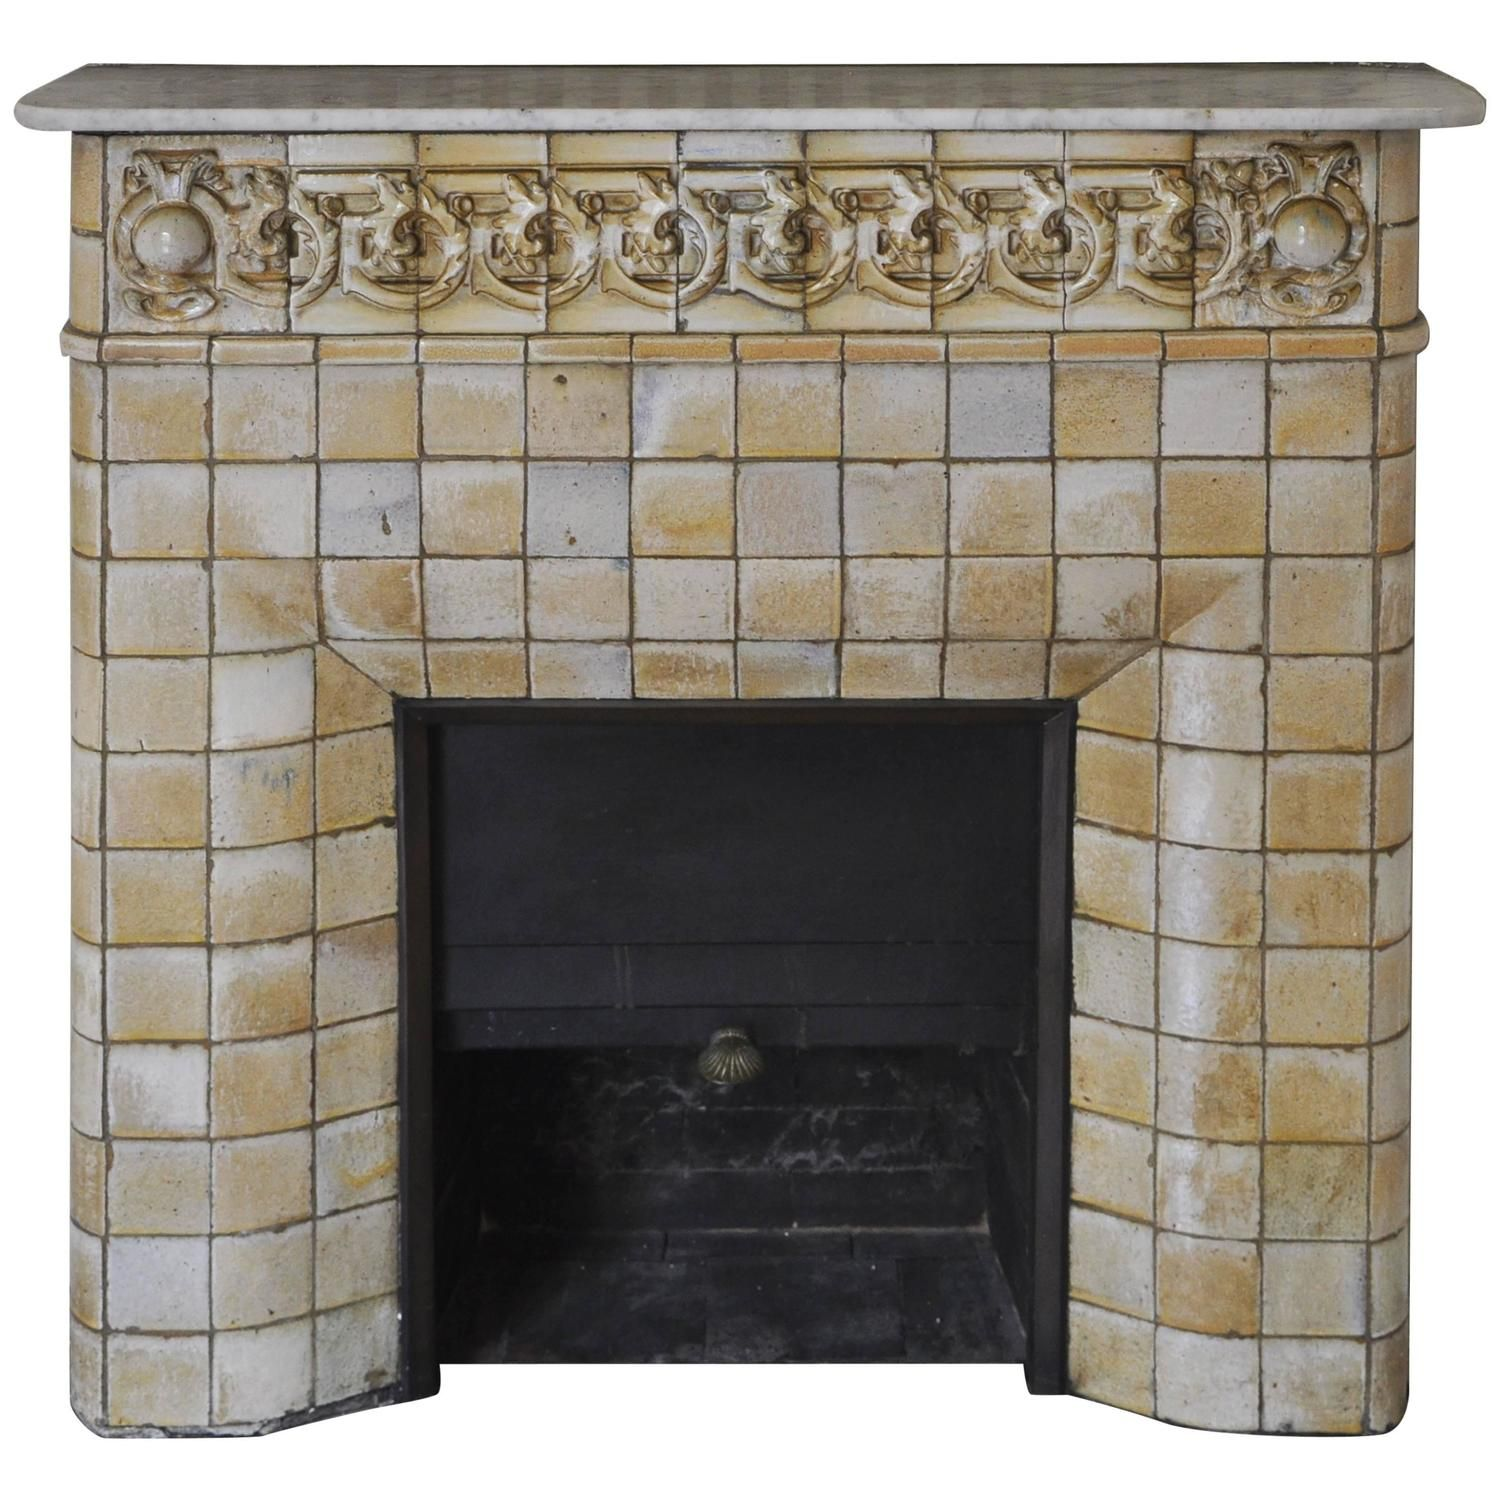 1900s Art Nouveau Fireplace Attributed to